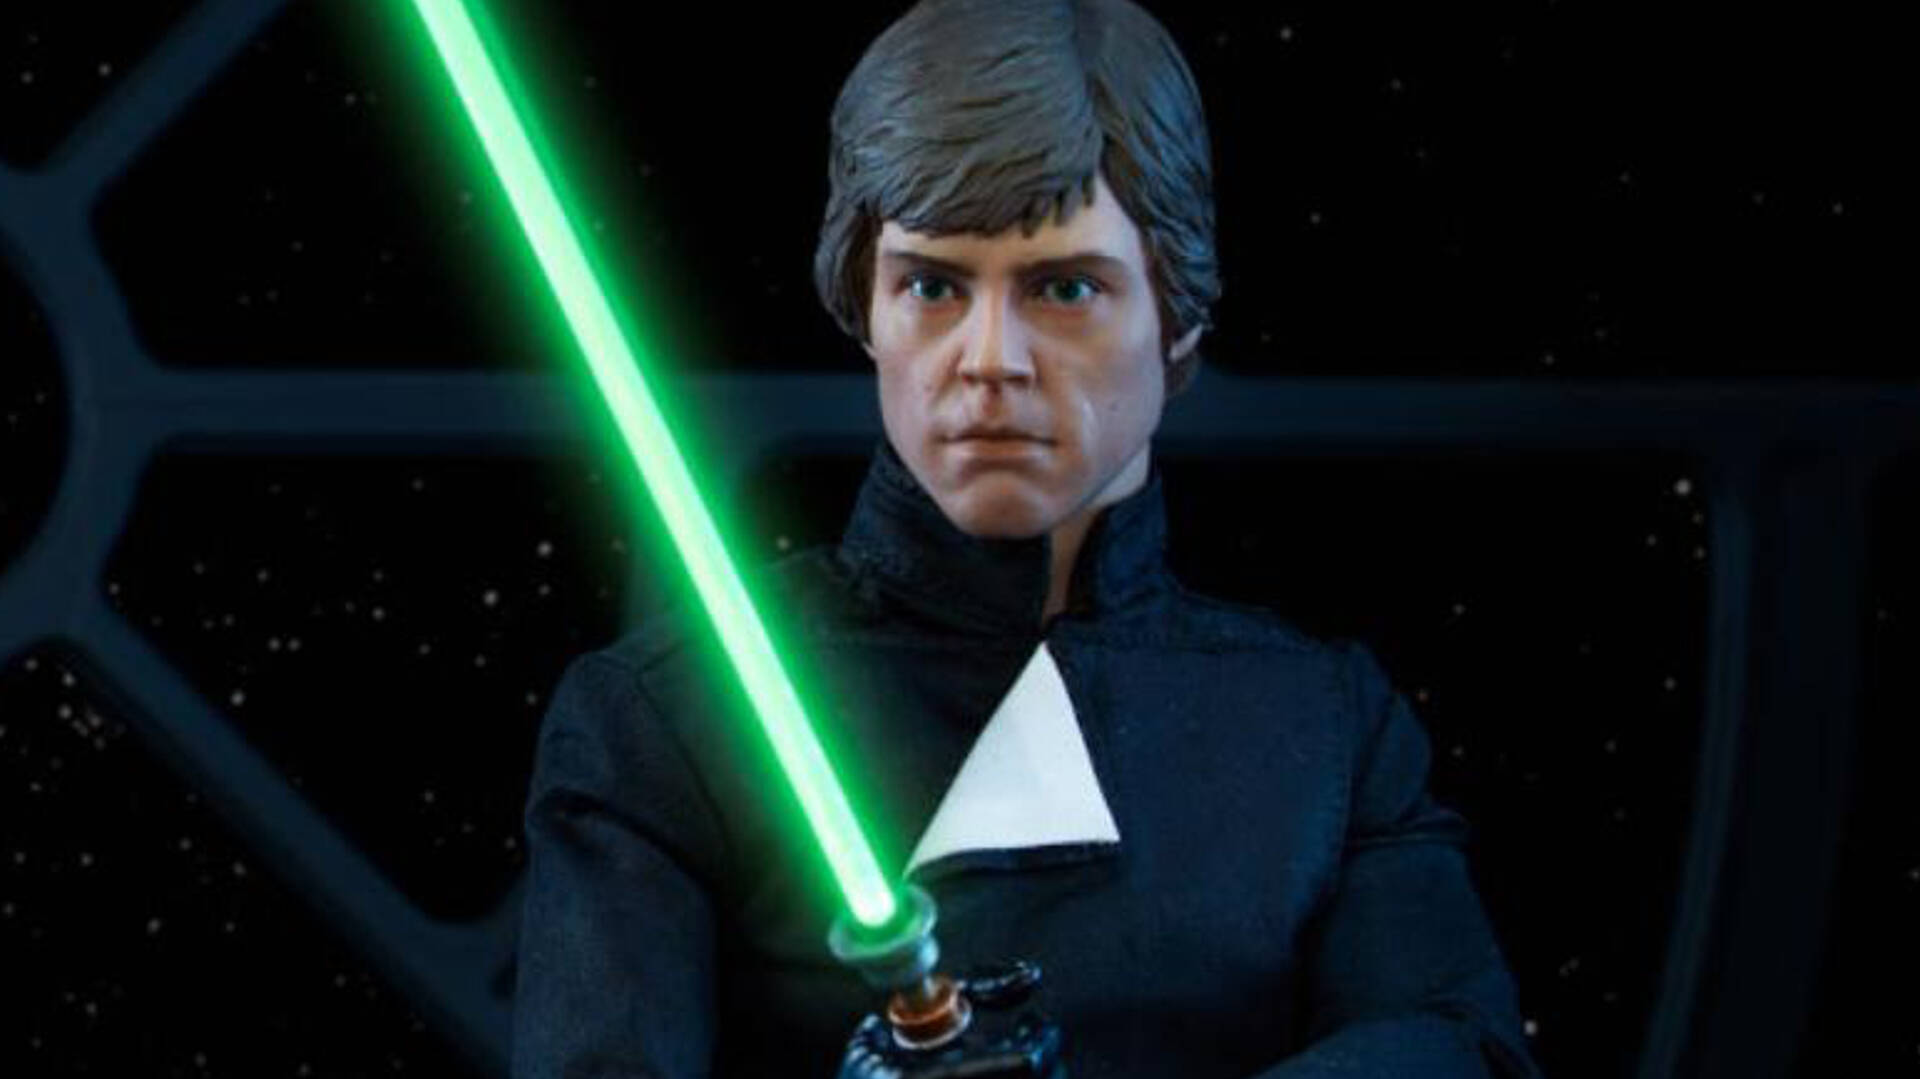 OFFICIAL SIDESHOW COLLECTIBLES STAR WARS LUKE SKYWALKER 1:6 SCALE DELUXE FIGURE